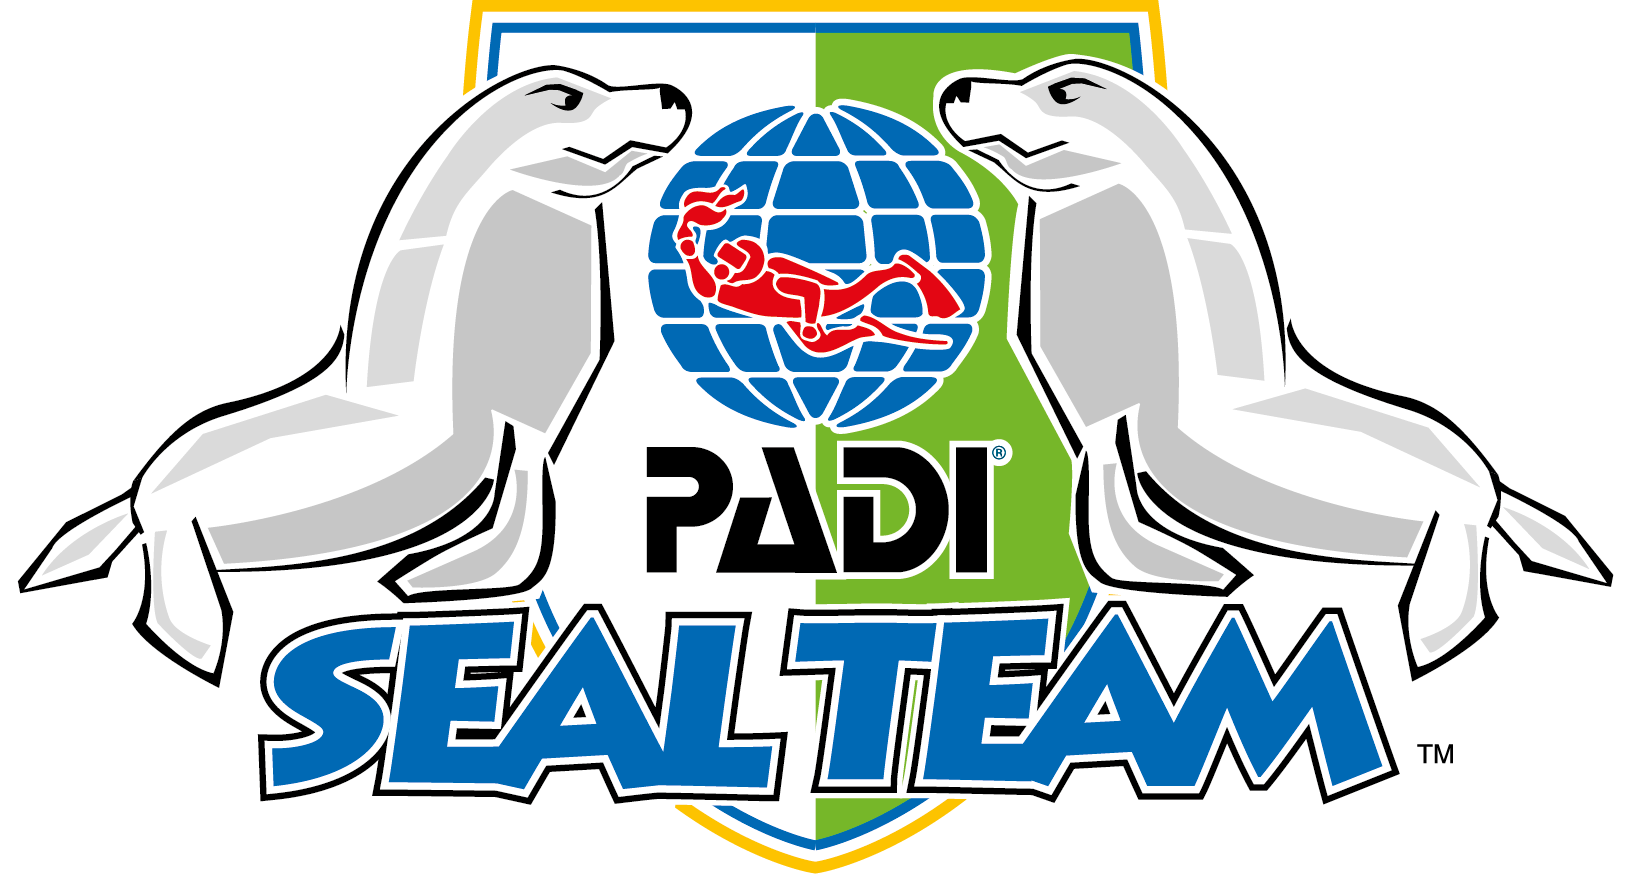 PADI Seal Team Logo